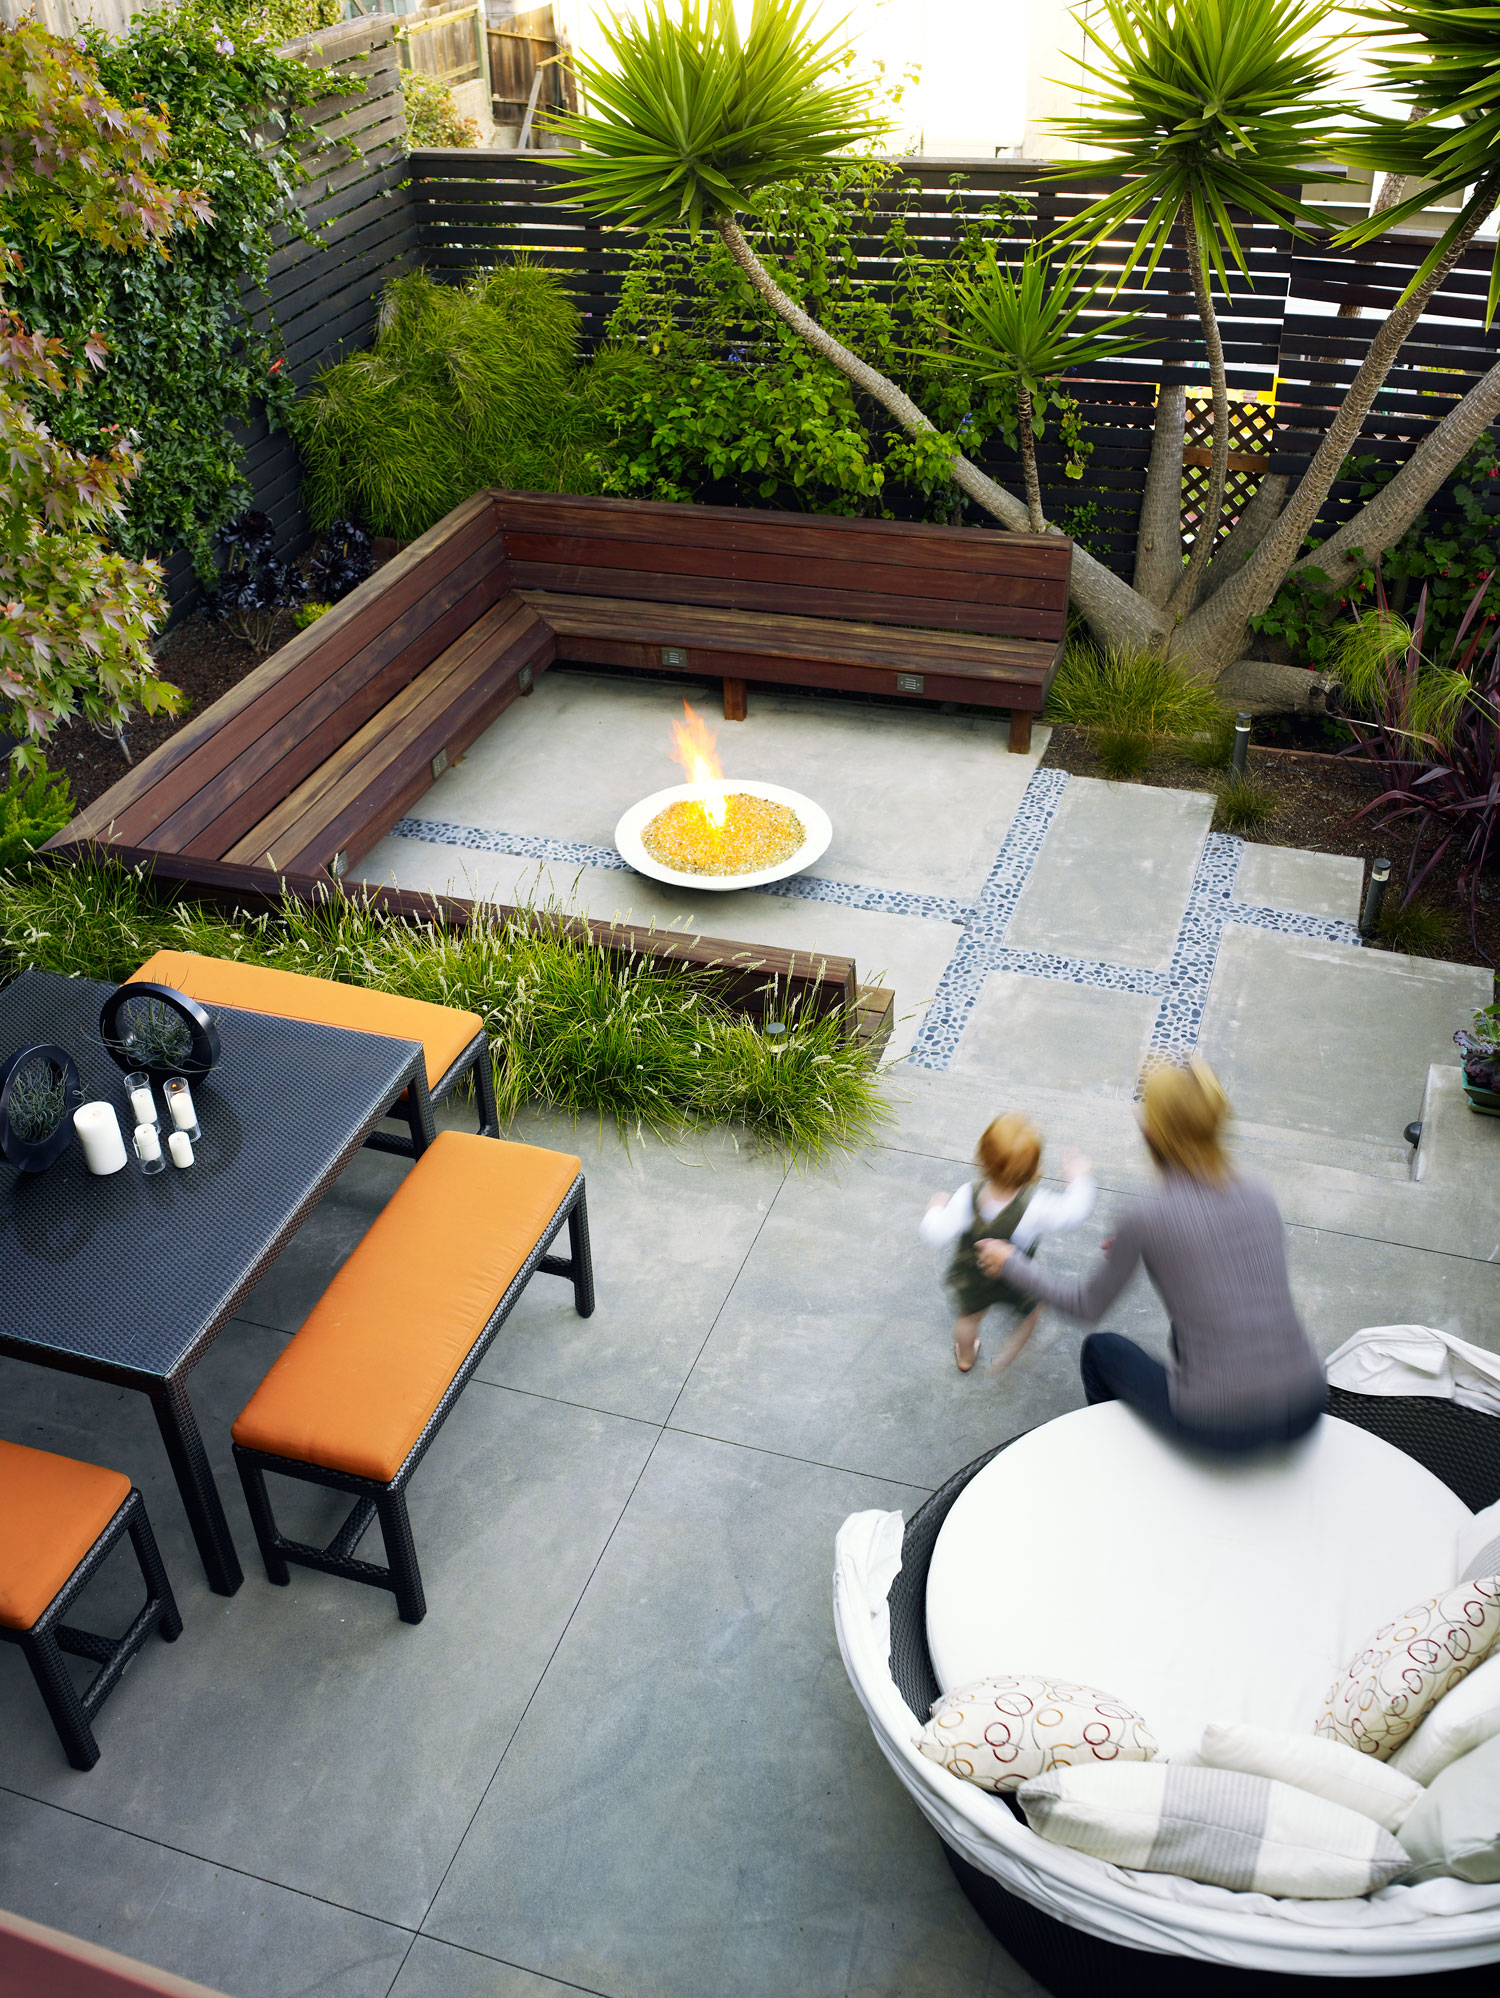 Before & After: Small Yards Think Big - Sunset Magazine on Back Garden Ideas id=87953